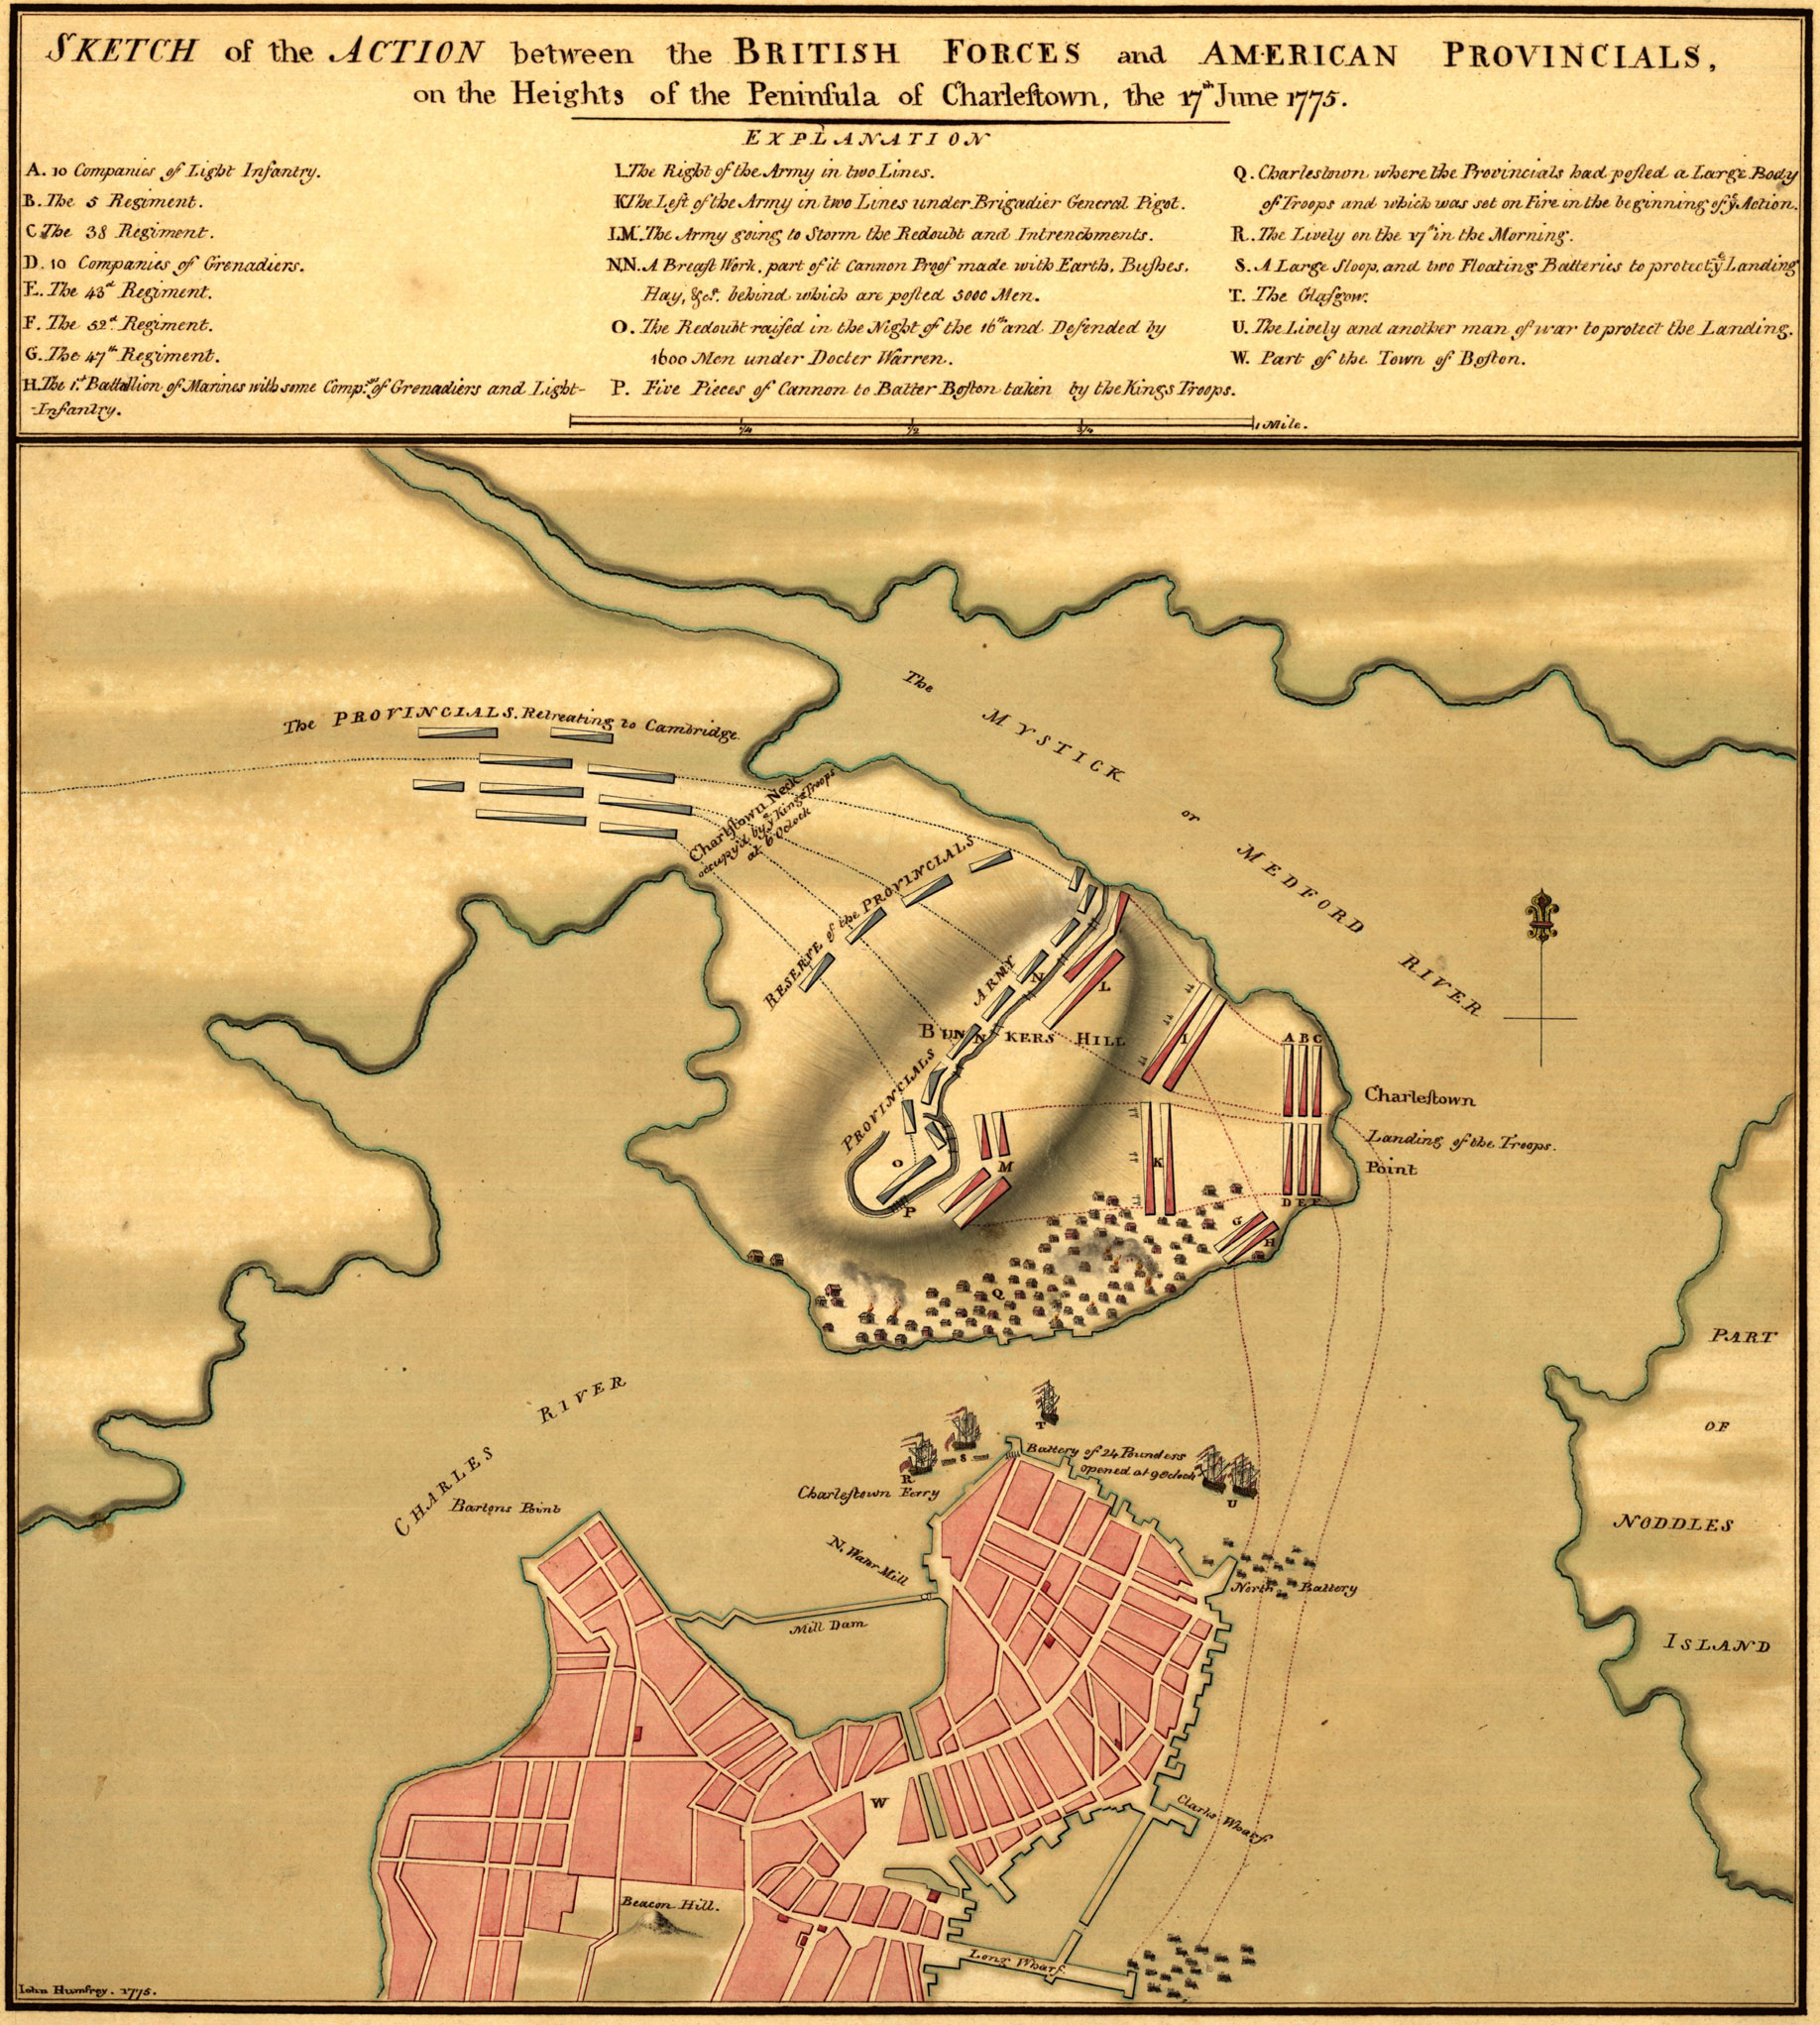 An Analysis of the Battle of Bunker Hill